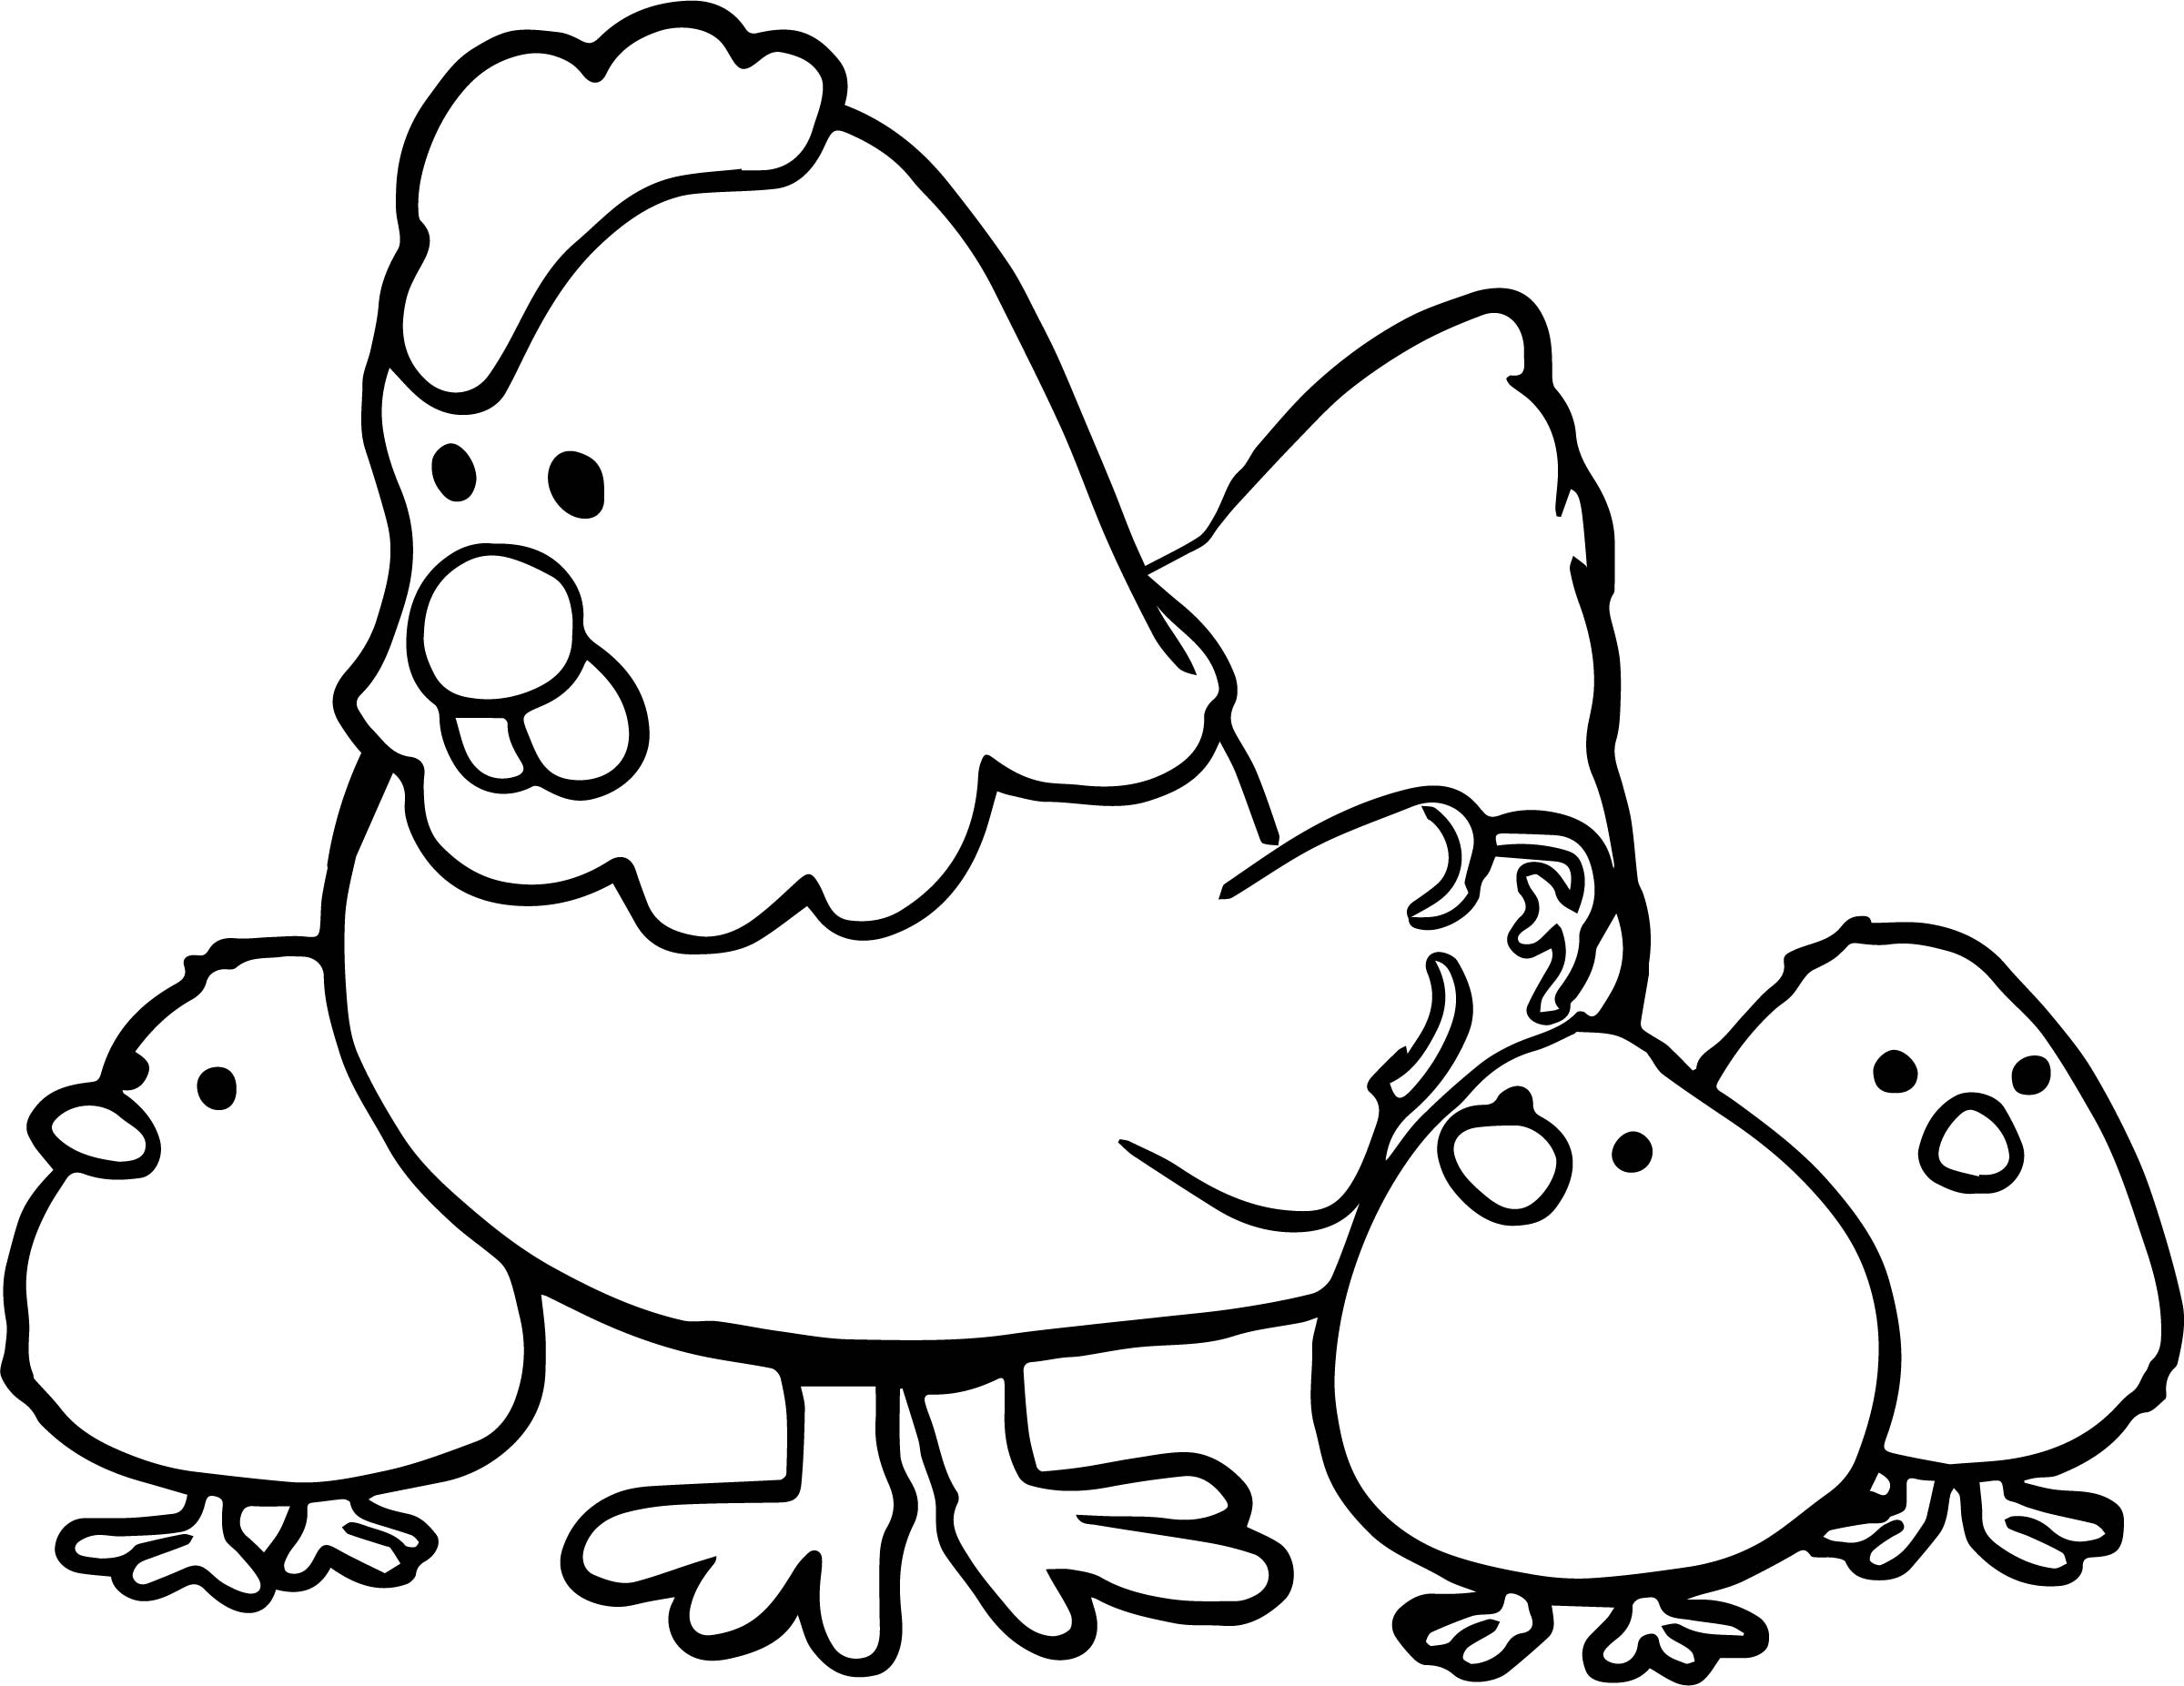 coloring pages chicken - hen and chicks cartoon coloring page